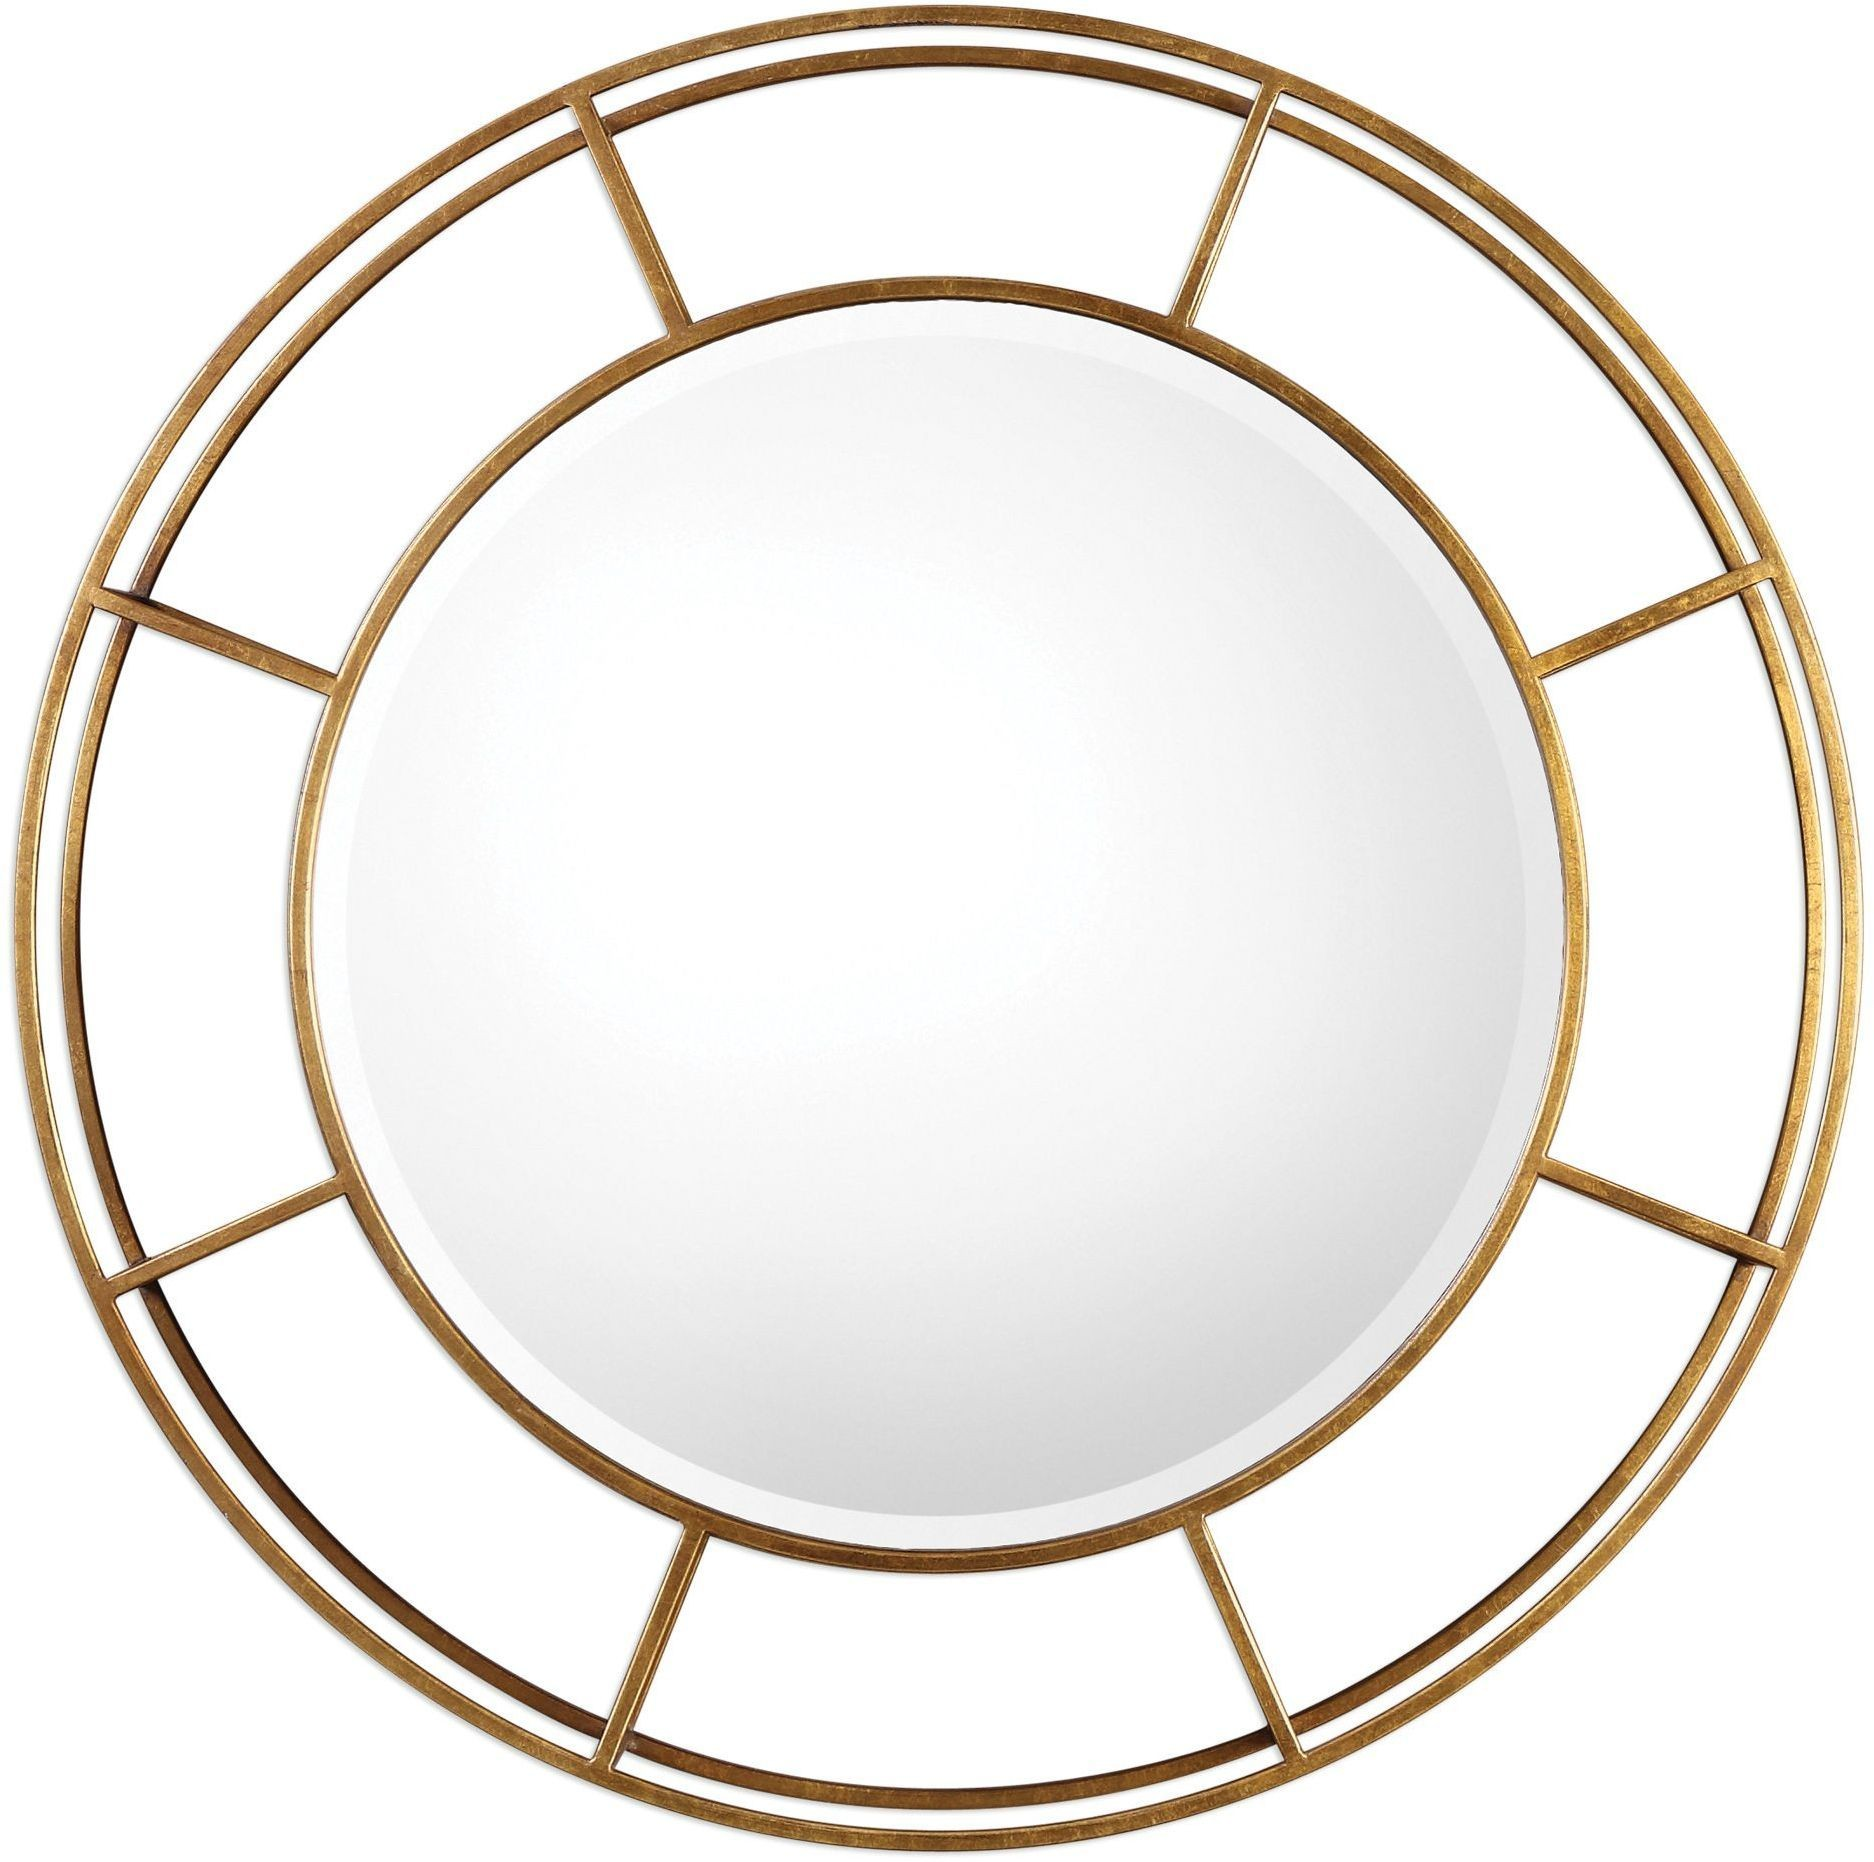 Salleron gold round mirror 09147 uttermost for Circle mirror